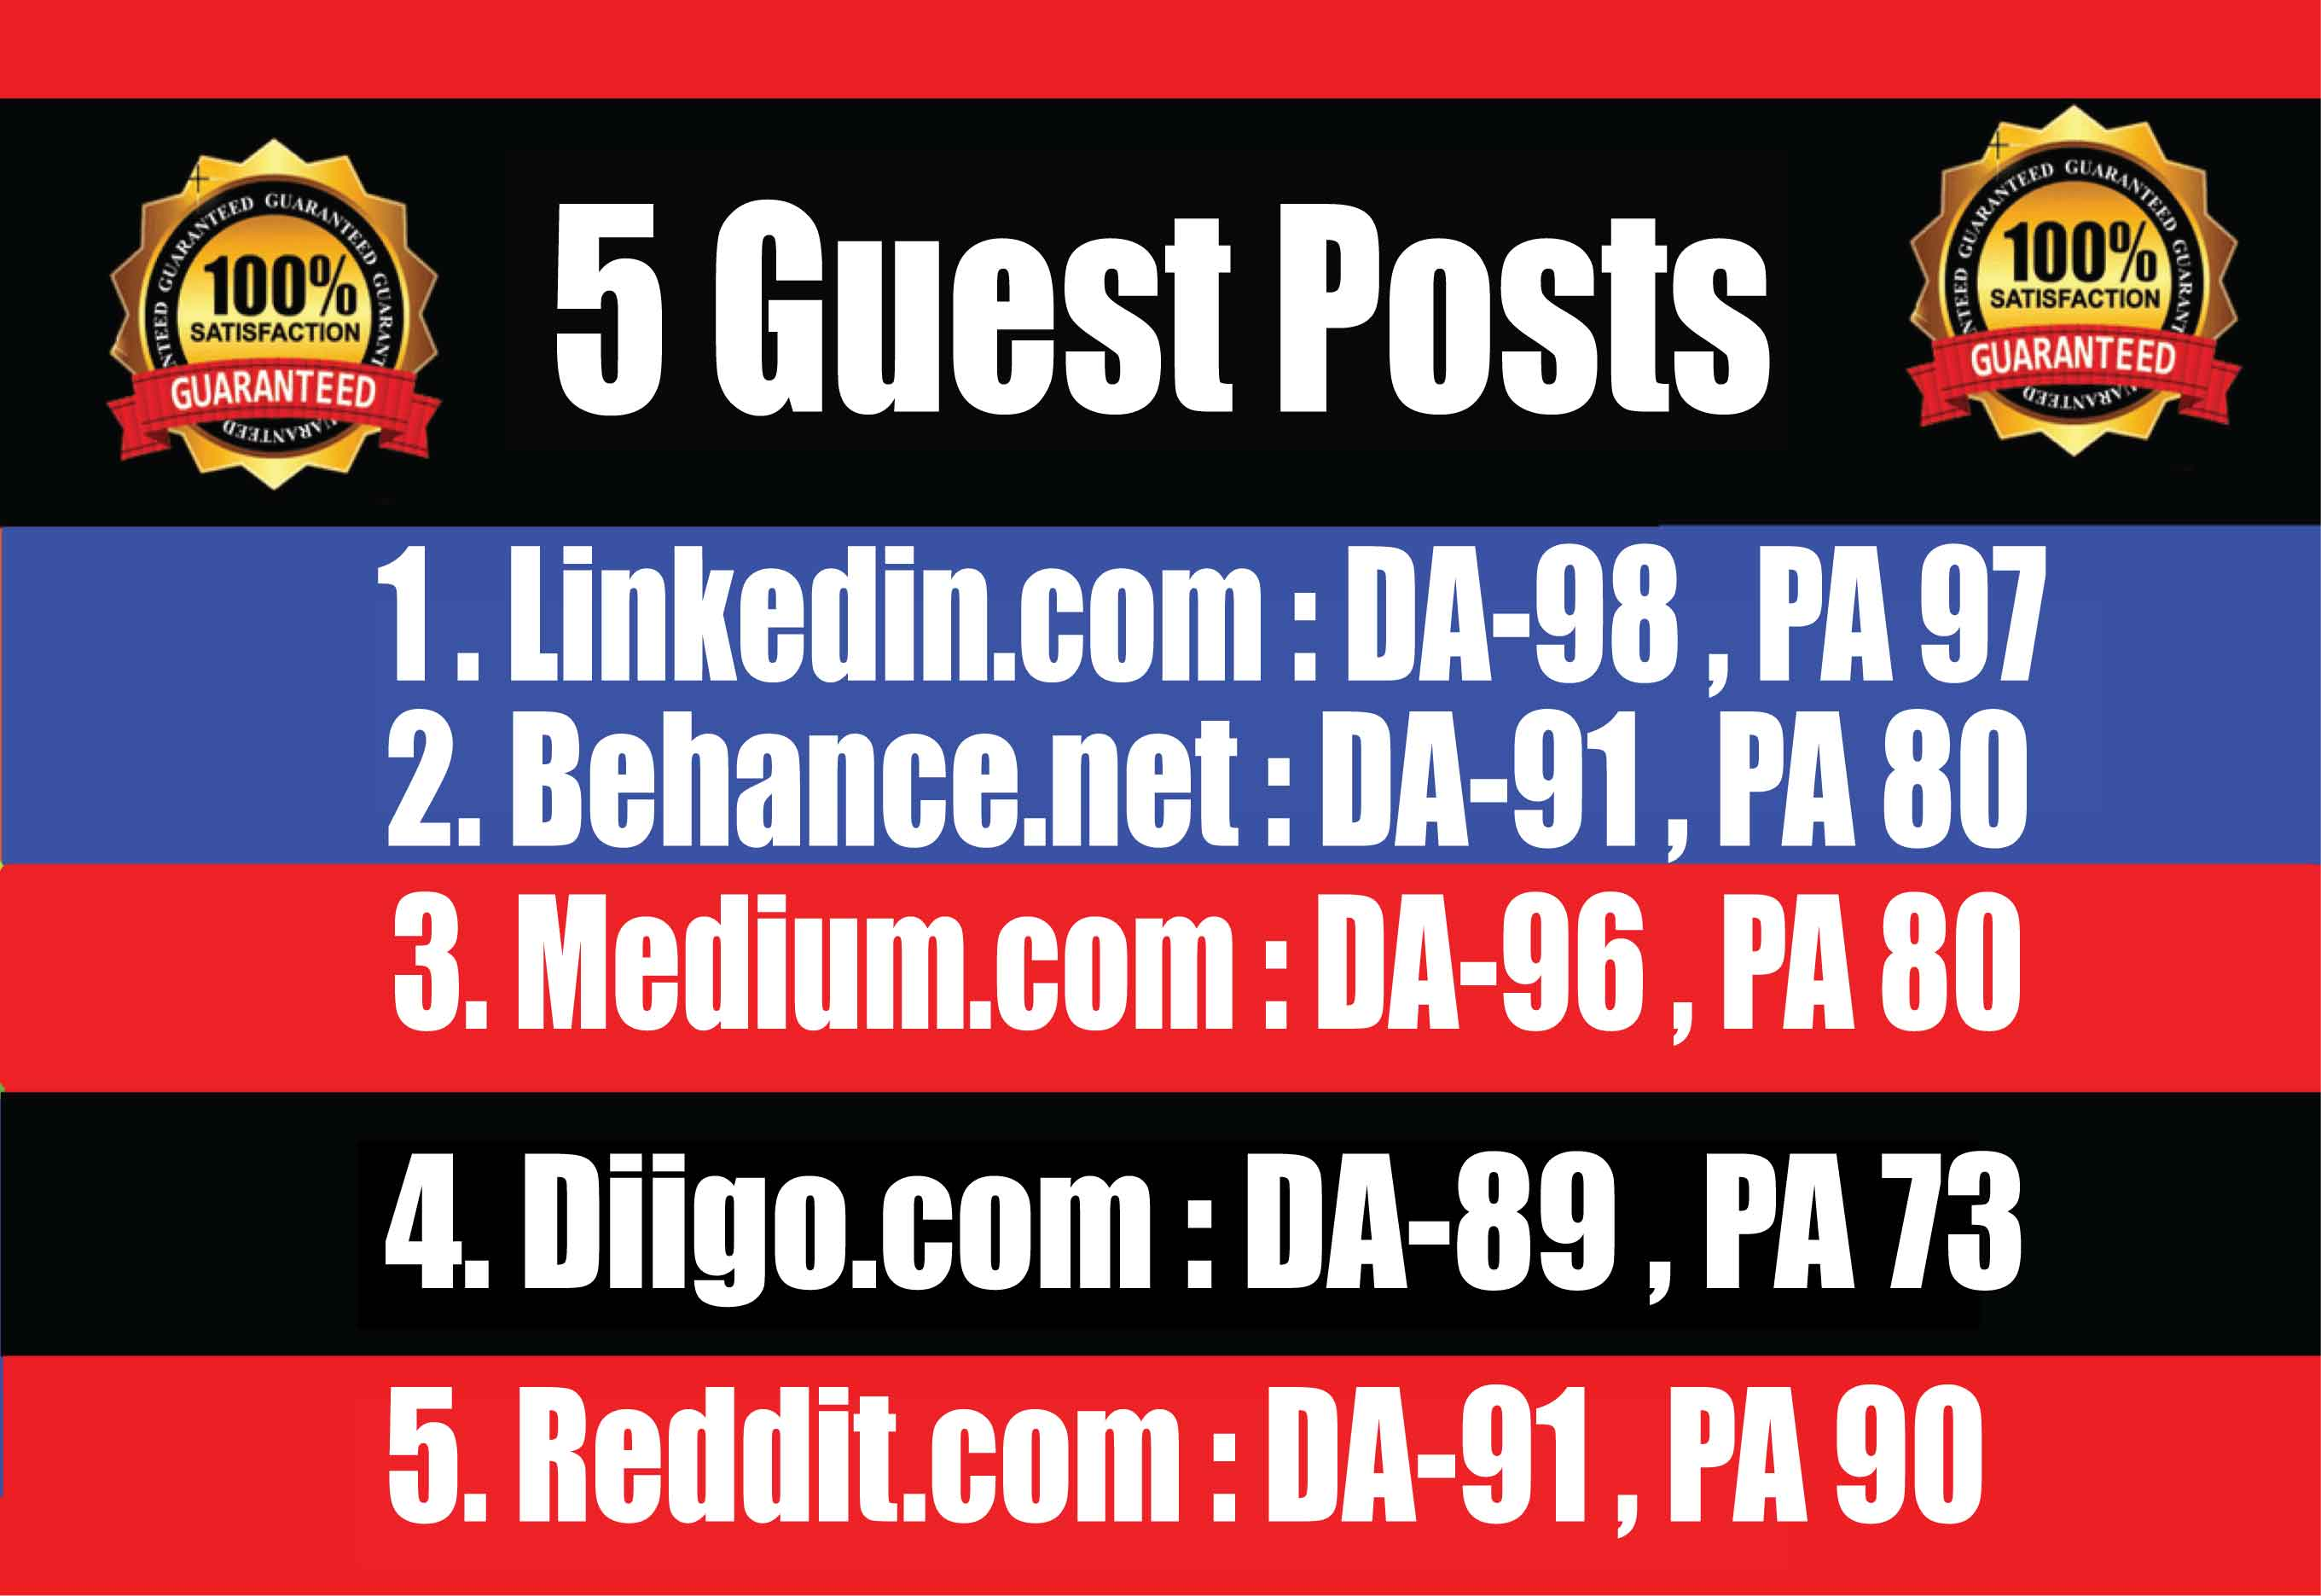 Publish 5 Guest Posts on Linkedin,  Behance,  Medium,  Diigo,  Reddit - High TF CF DA PA Blogs